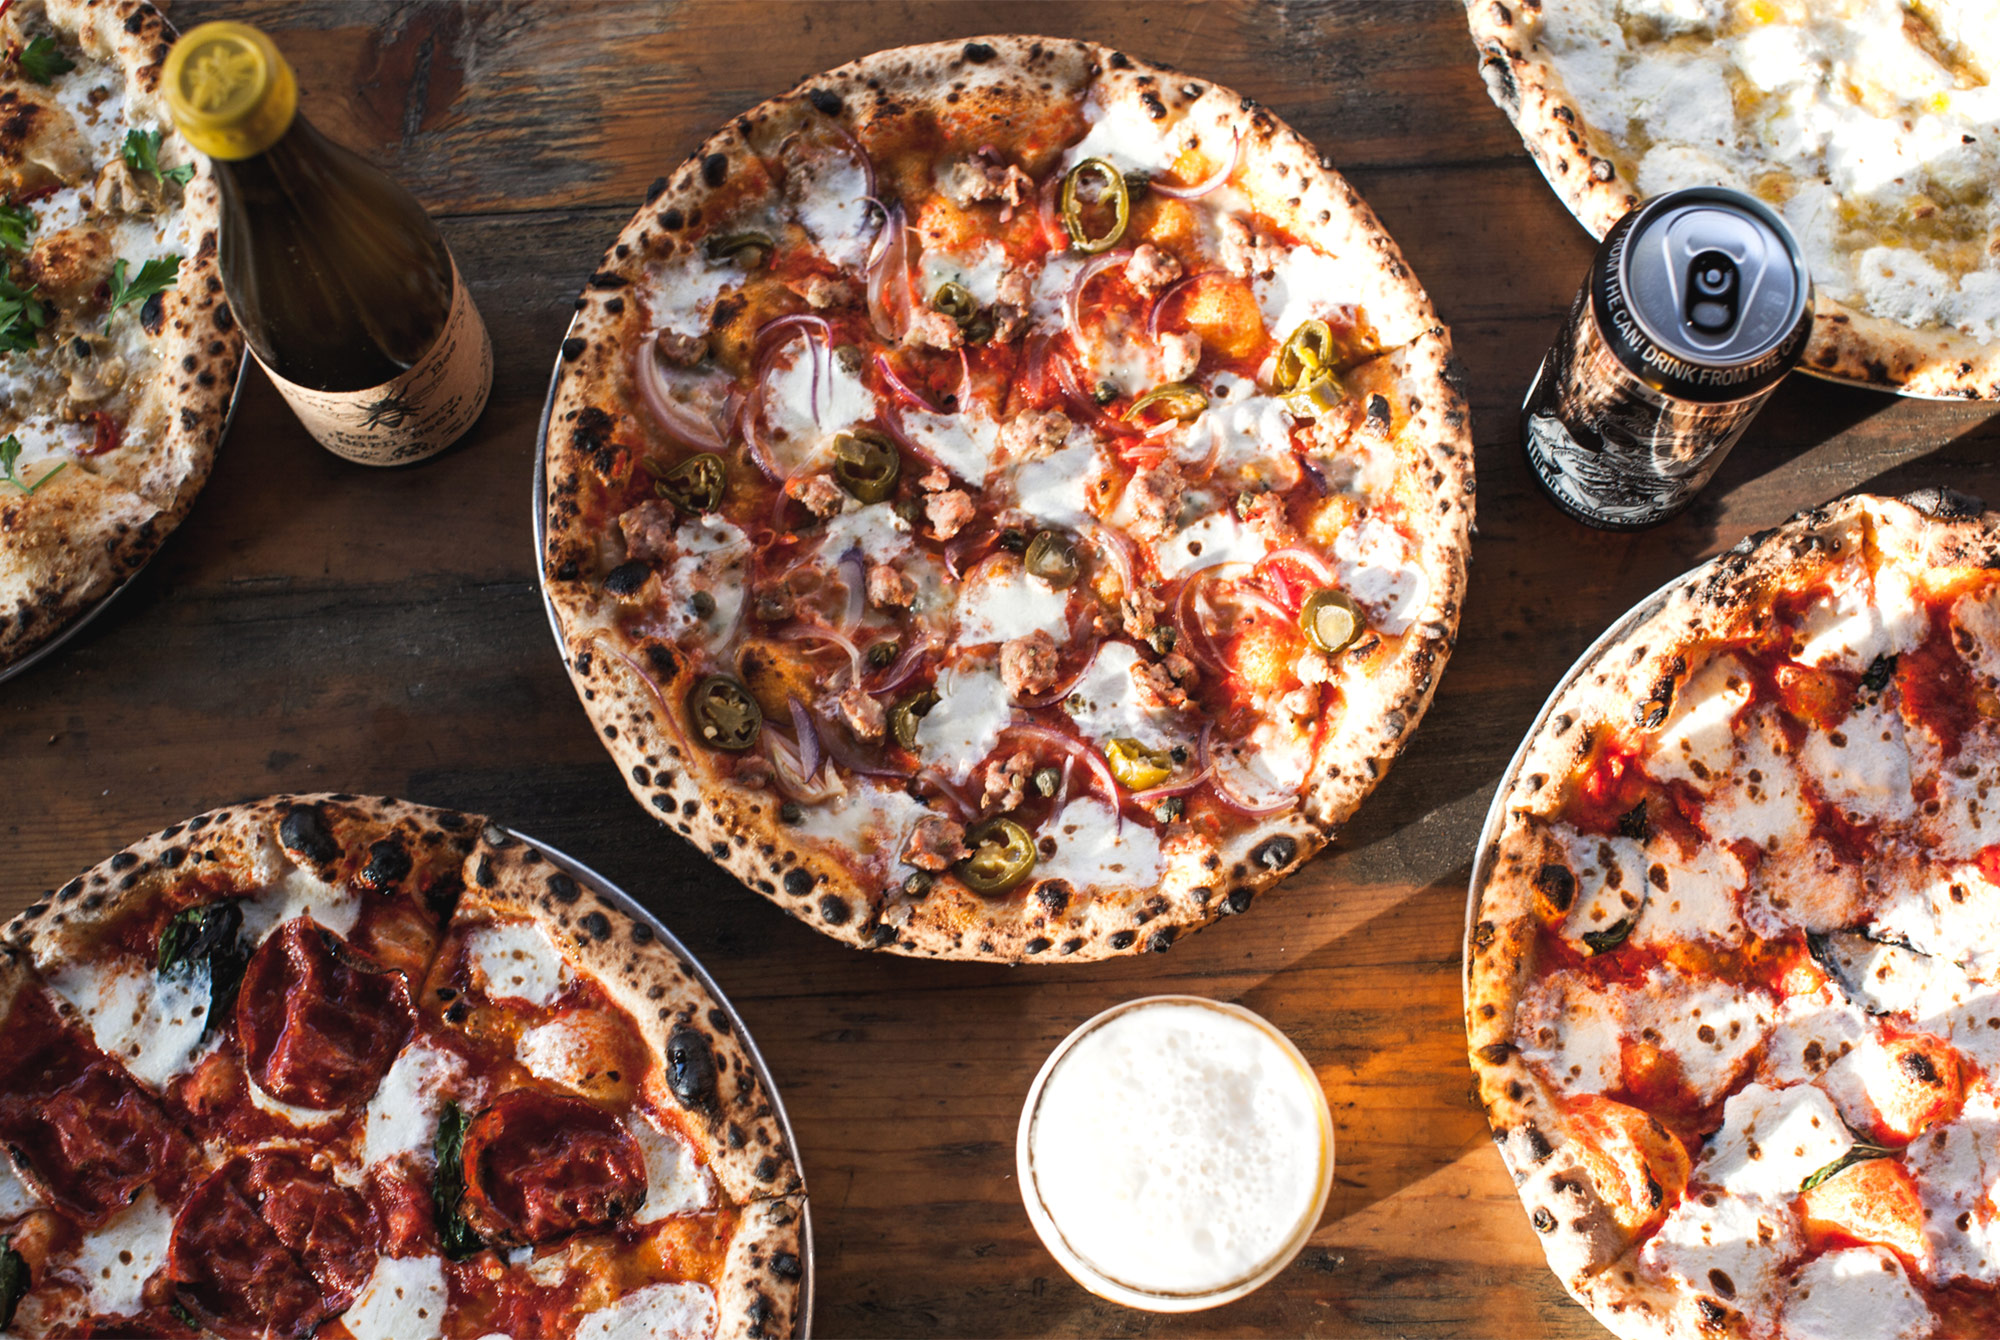 How to Pair Pizza with Beer, According to Roberta's in Brooklyn